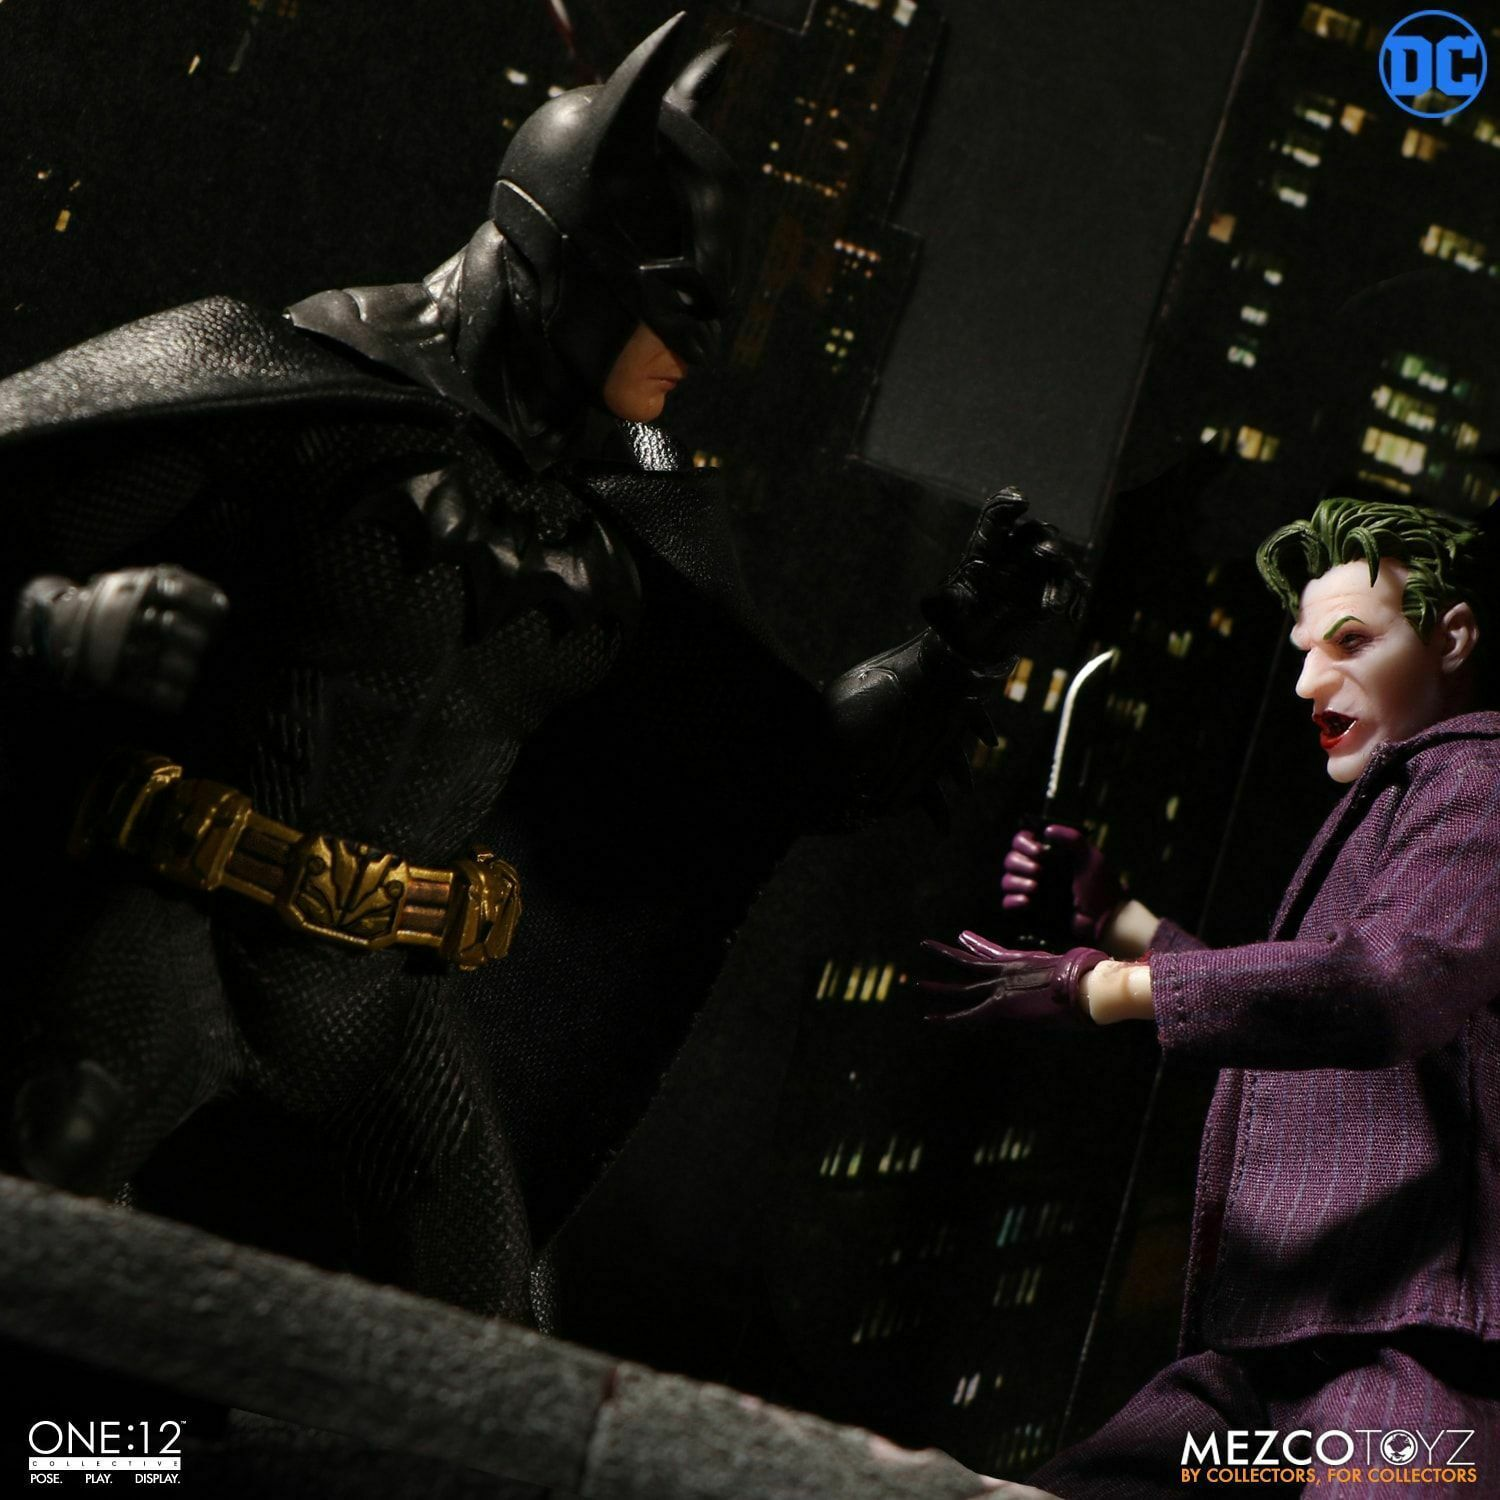 "Mezco Toyz Dc Comics One: 12 Batman Sovereign Knight 6 "" Figurine WC76960"